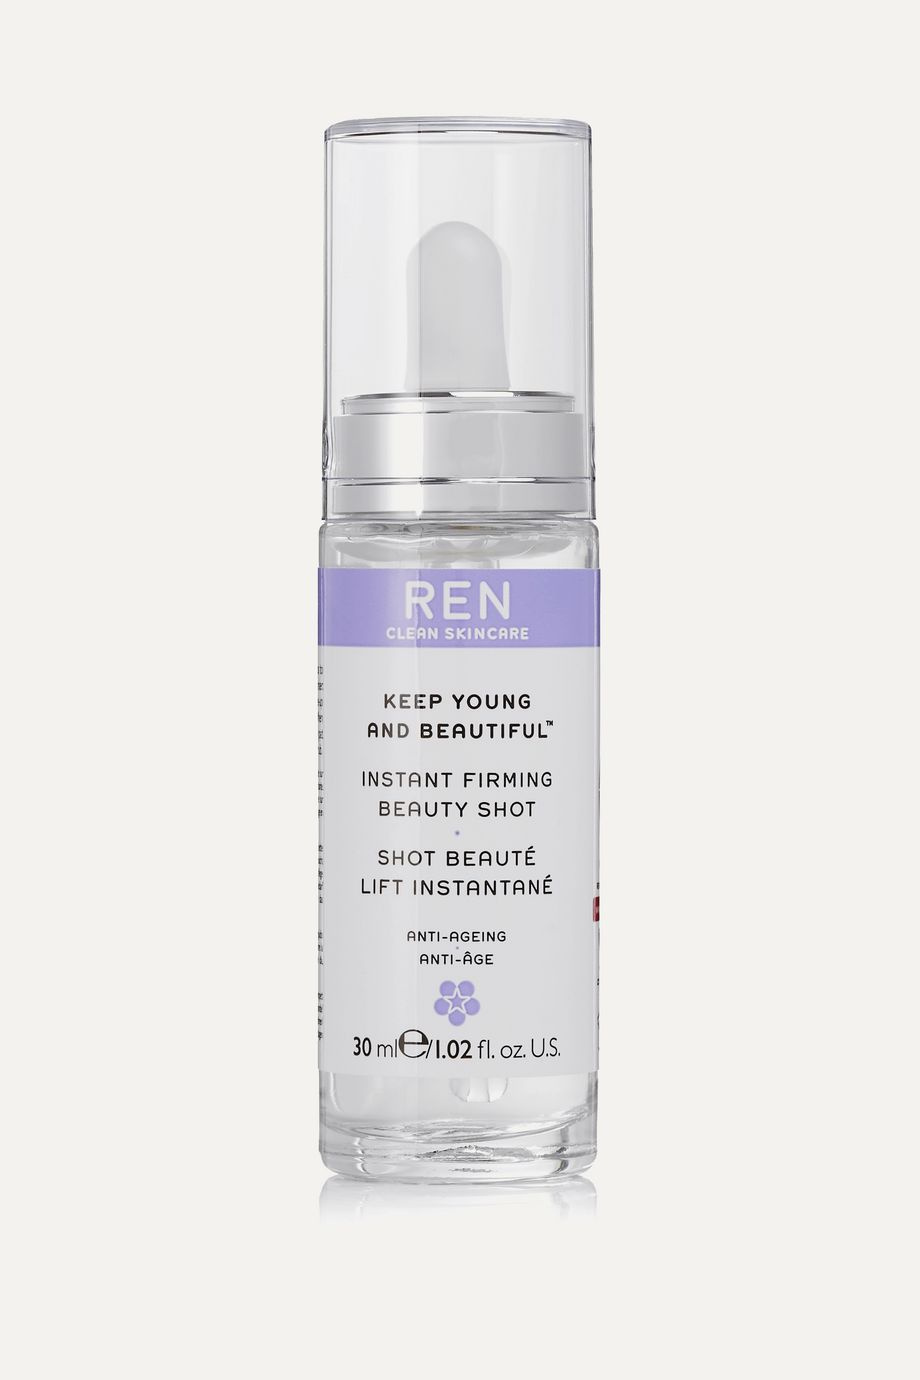 REN Clean Skincare Keep Young And Beautiful Instant Firming Beauty Shot, 30ml